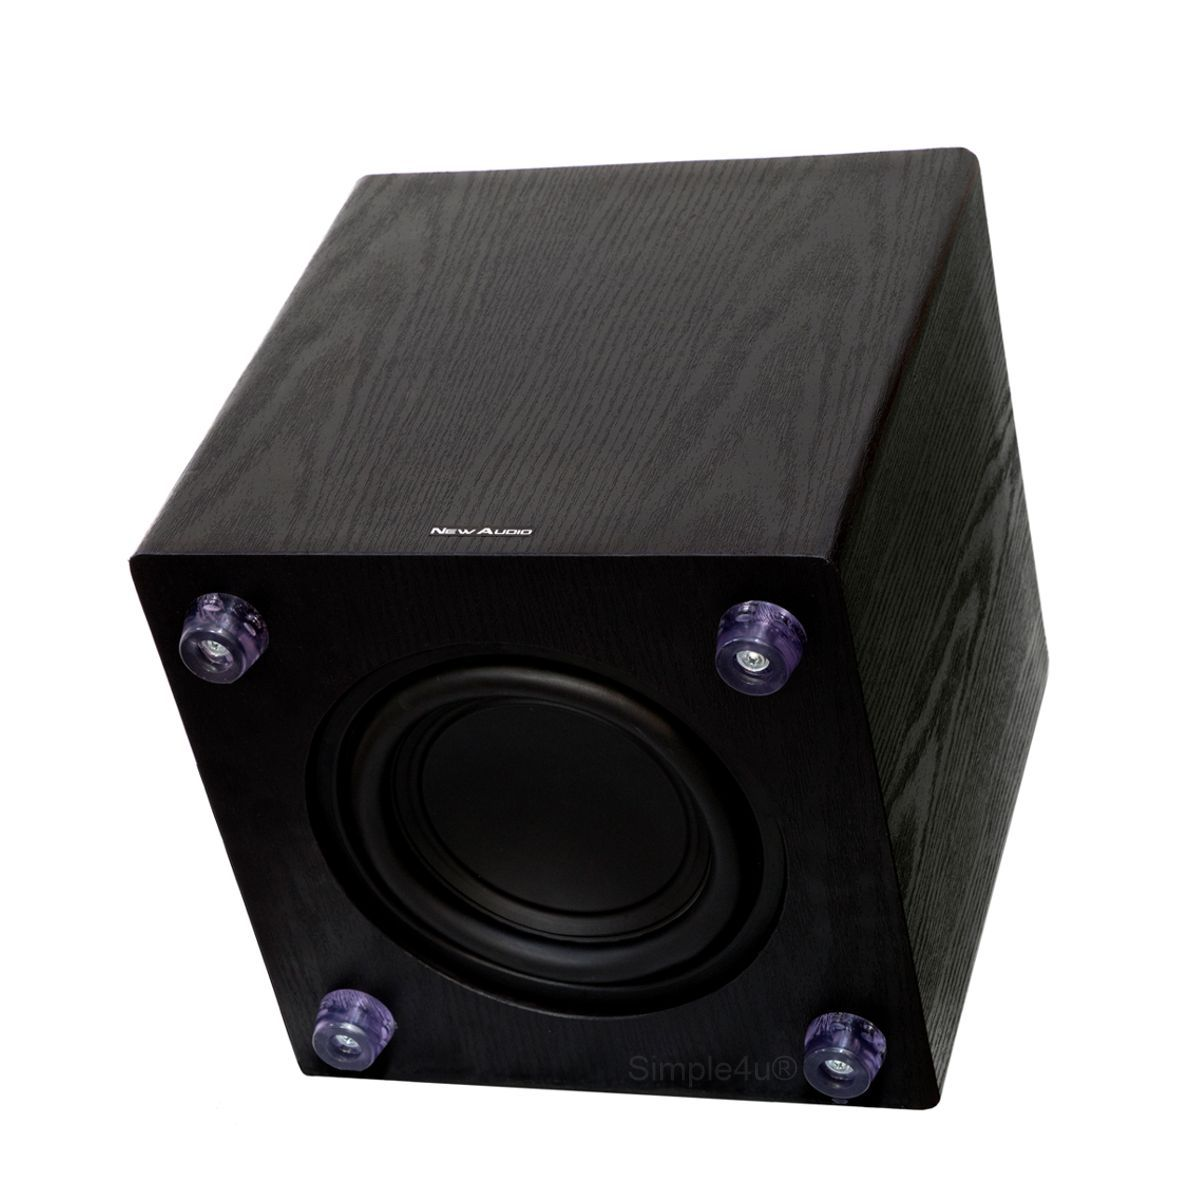 "Subwoofer Ativo 8"" 200W RMS Clean Design Black Piano SUB200 8 New Audio"